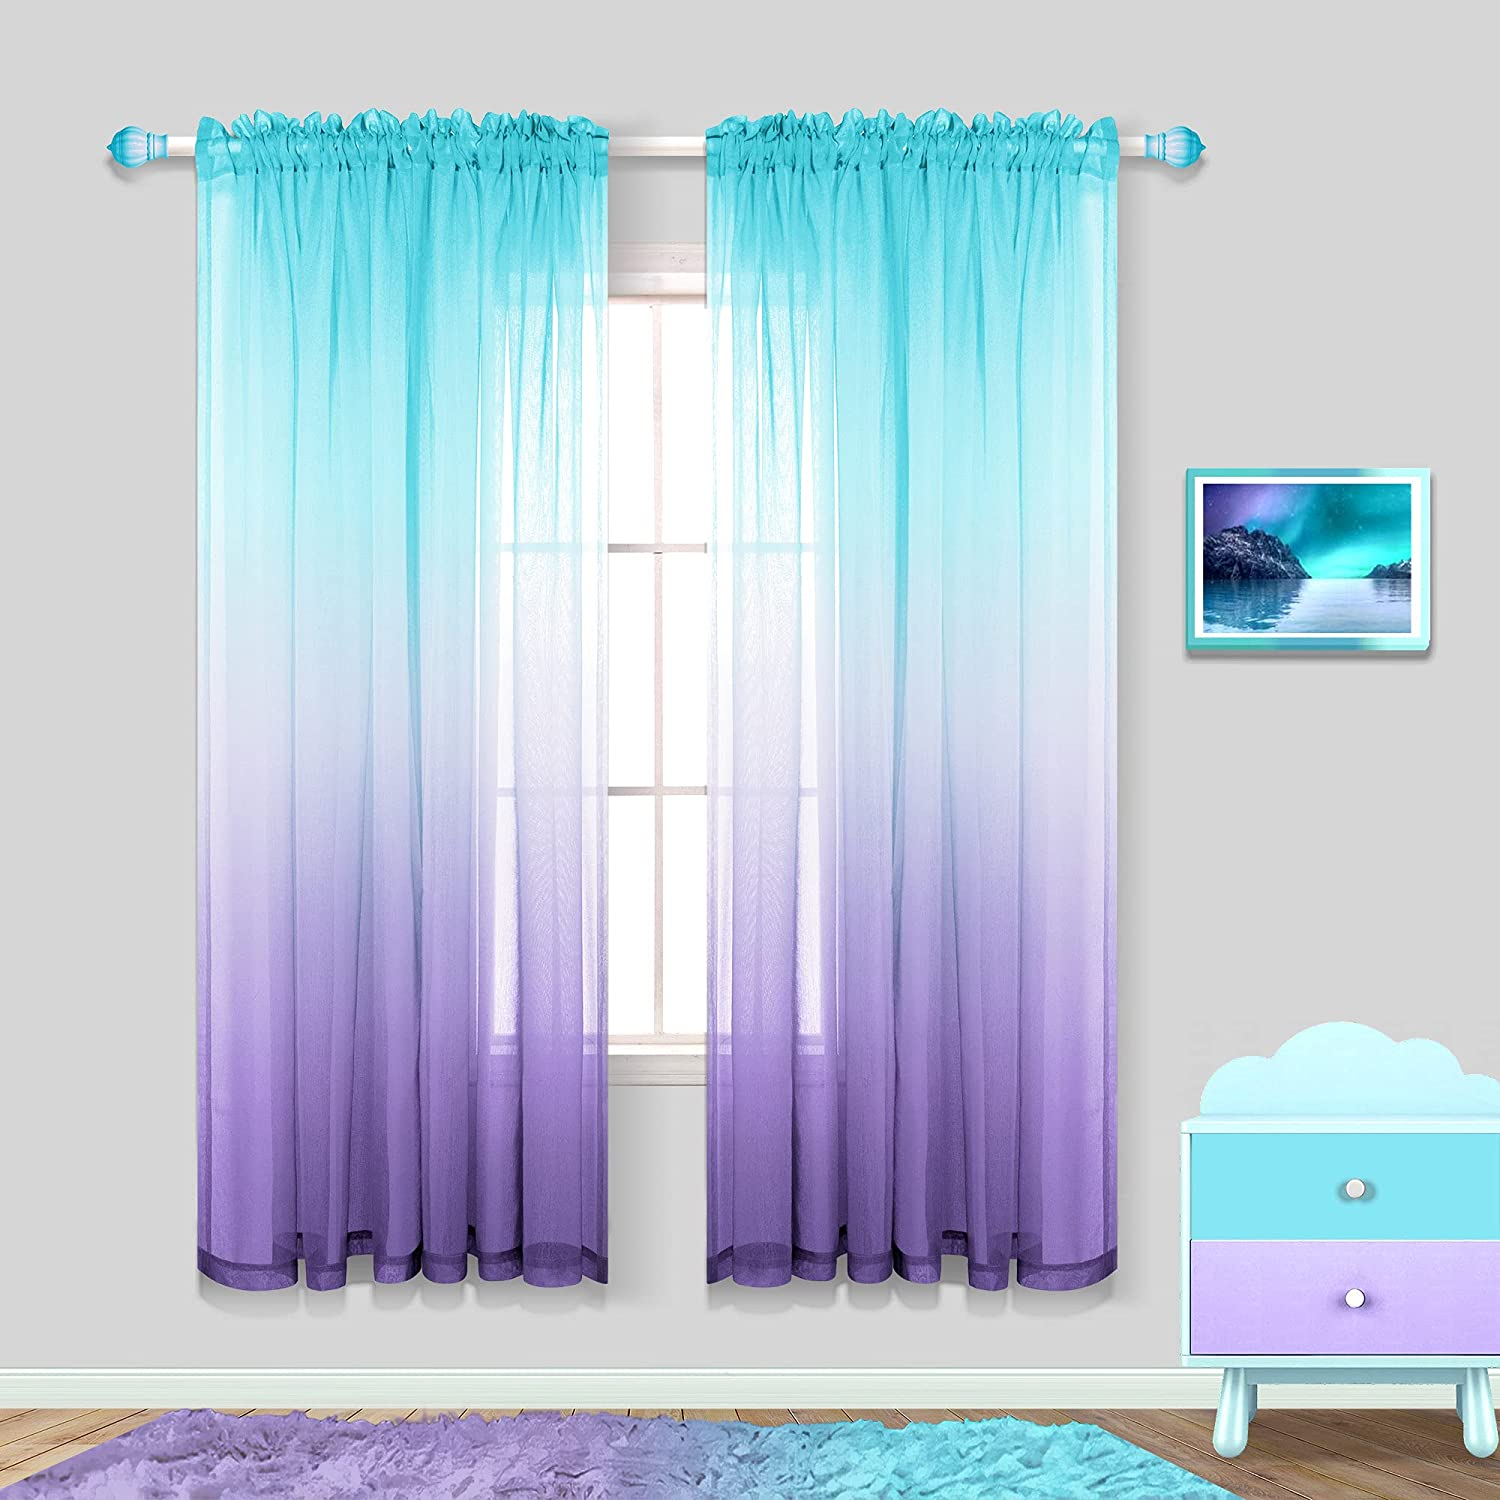 Mermaid Girls Room Decorations for Bedroom 2 Panels Rod Pocket Ombre Curtains Mermaid Room Decor for Teen Girls Aqua Teal and Lilac Purple 63 Inch Length